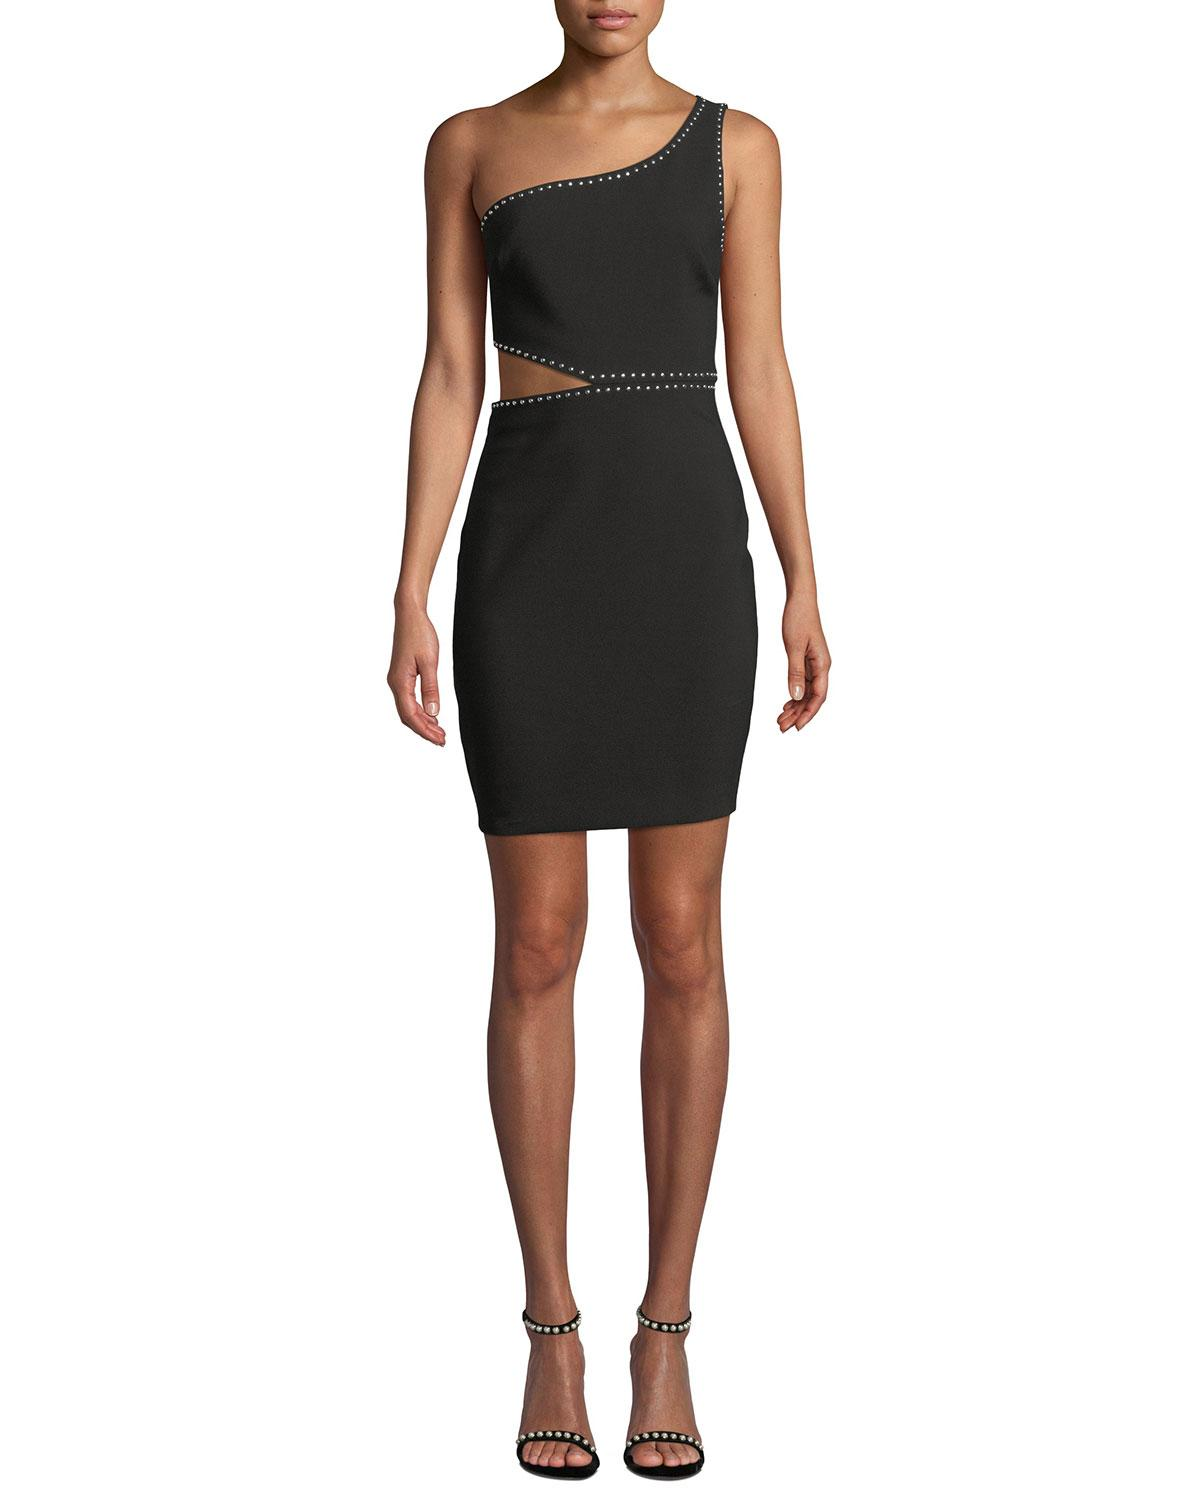 0b7165b5785eaa Likely - Black Portia Studded One-shoulder Cutout Cocktail Dress - Lyst.  View fullscreen